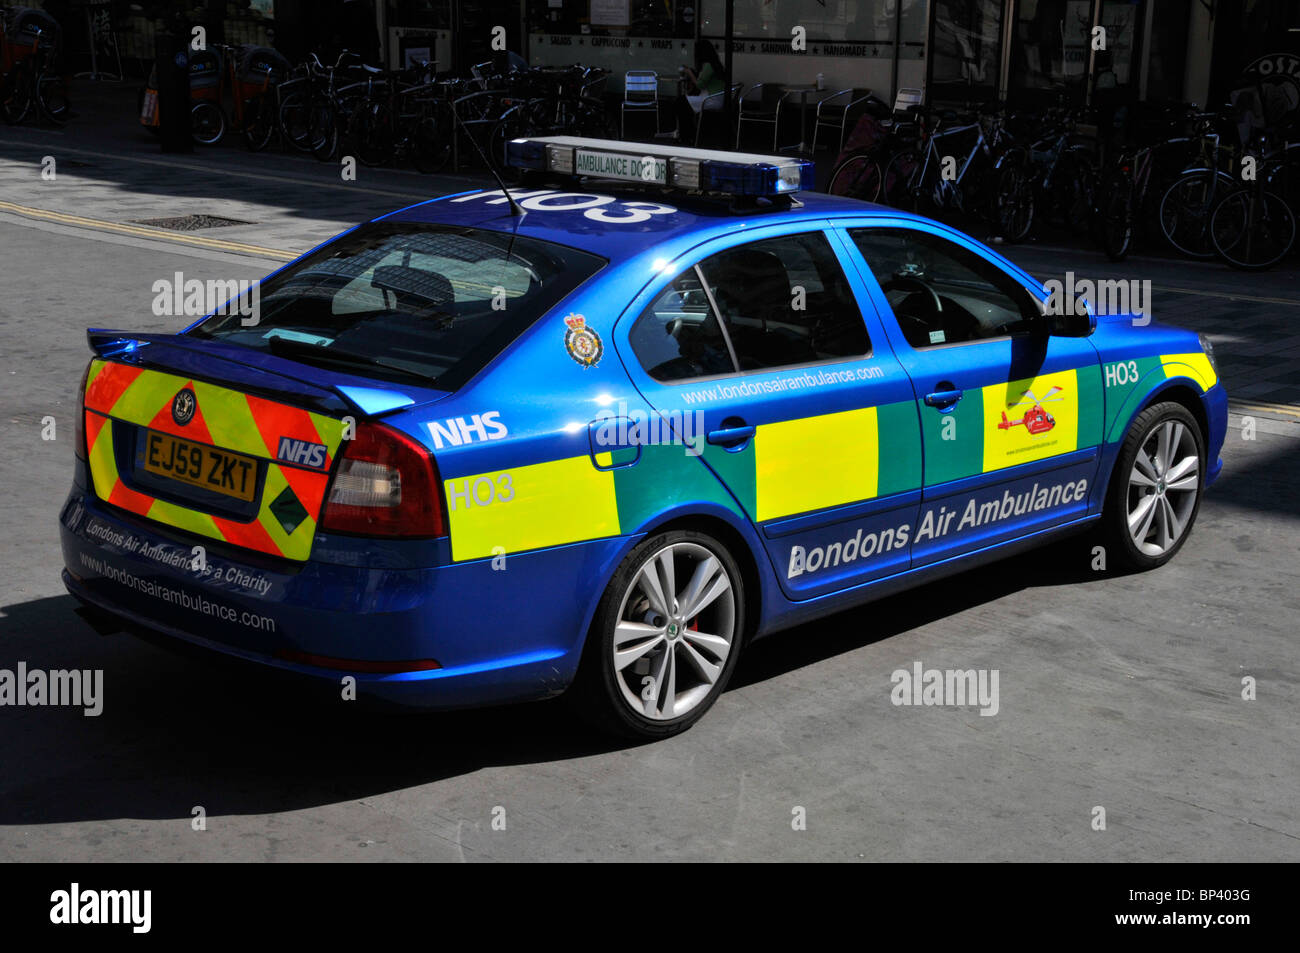 Support voiture Air Ambulance Londons Photo Stock